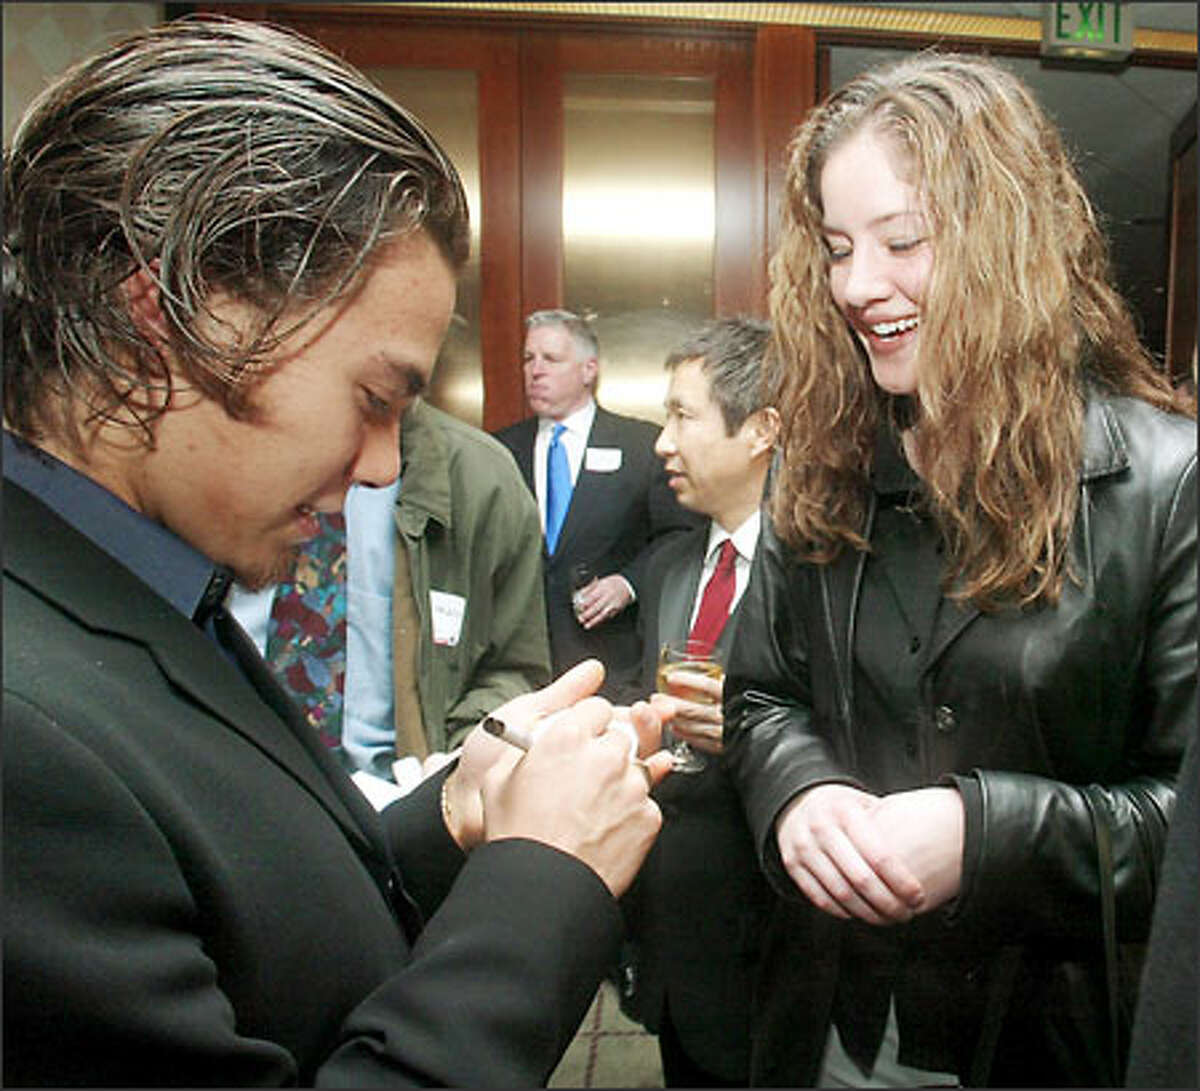 Short-track speedskating gold and silver medalist Apolo Anton Ohno signs a business card for fan Sandra Reed before the P-I Sports Star banquet at the Westin.